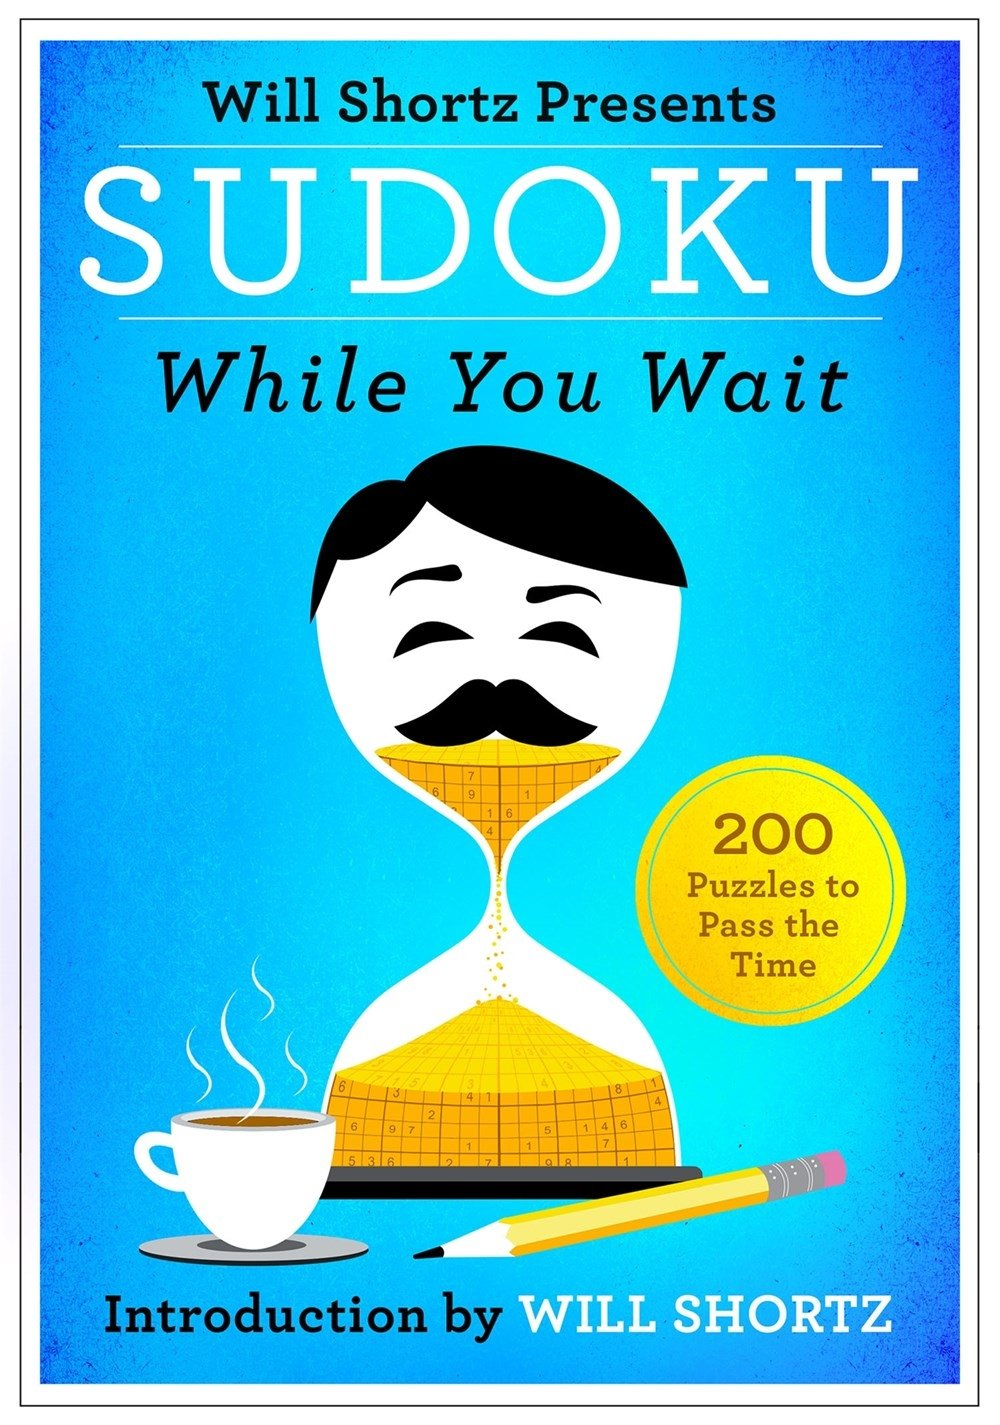 Will Shortz Presents Sudoku While You Wait: 200 Puzzles to Pass the Time pdf